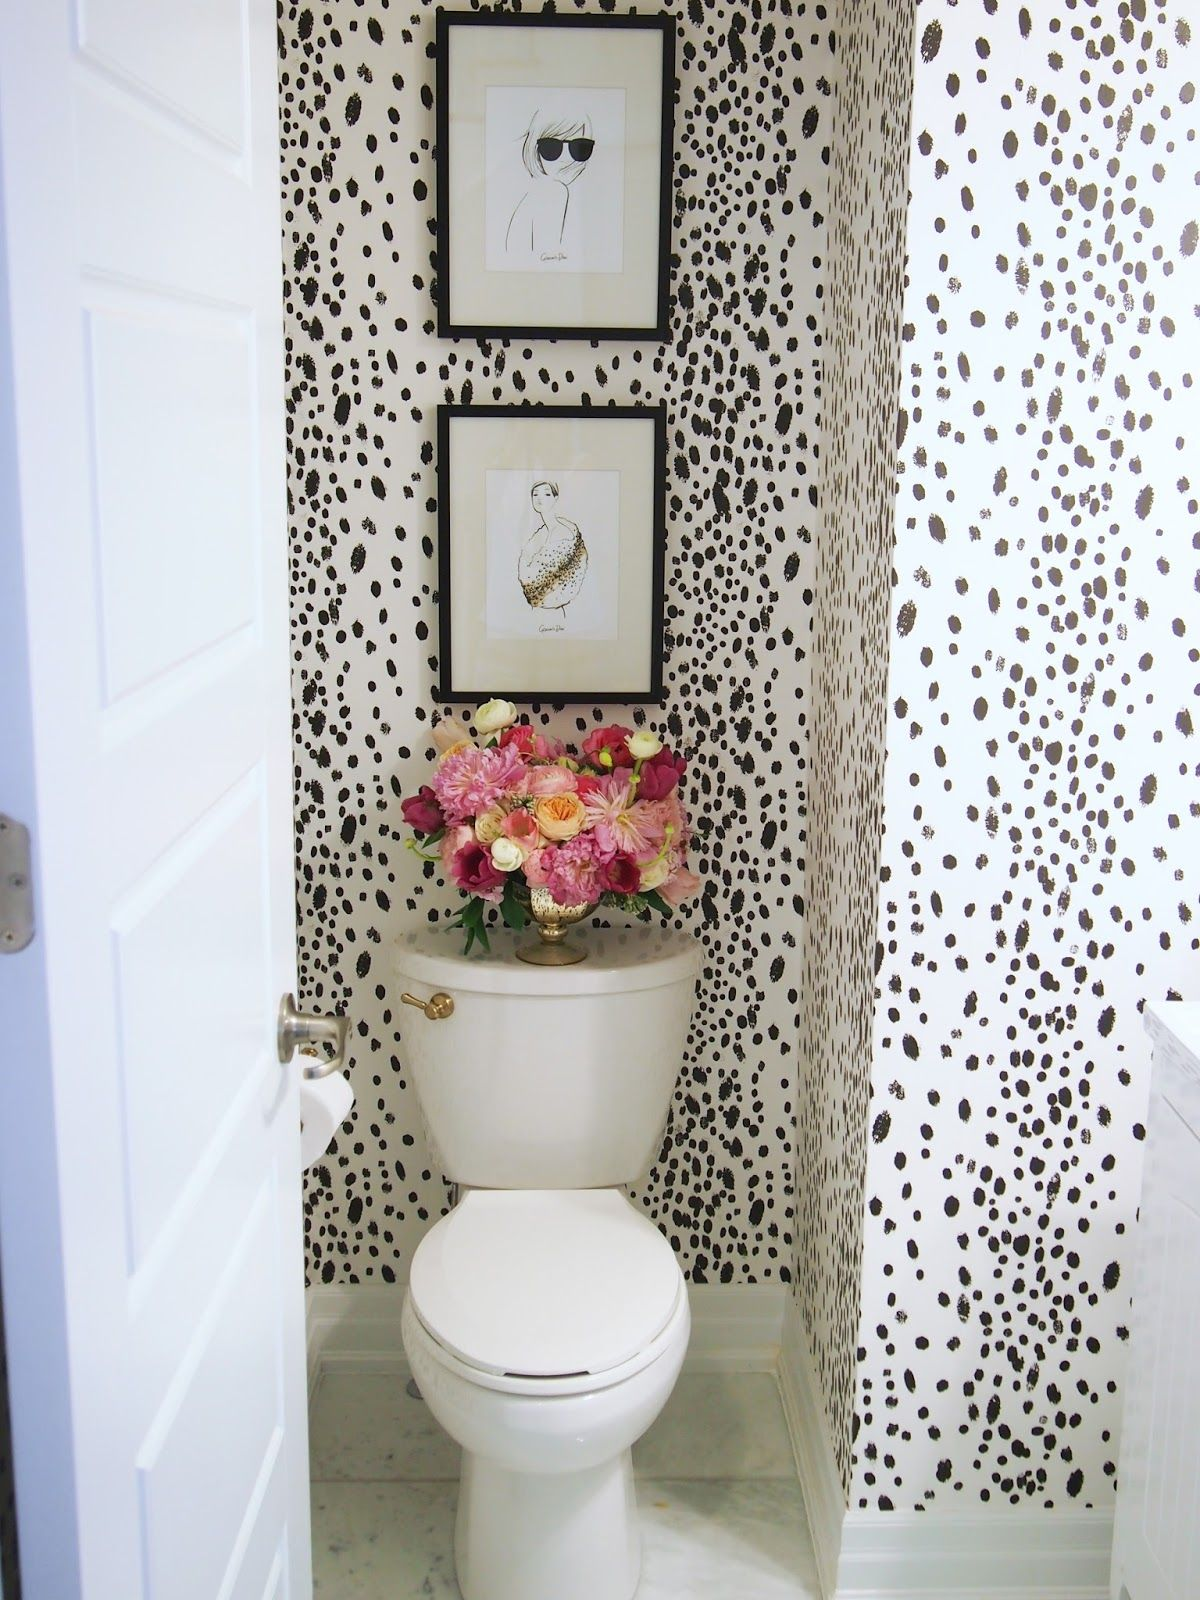 We Just Love How Suburban Faux Pas Used Spoonflower Wallpaper To Make This Powder Room Chic And Sophisticated Stunning Re Vamp Project